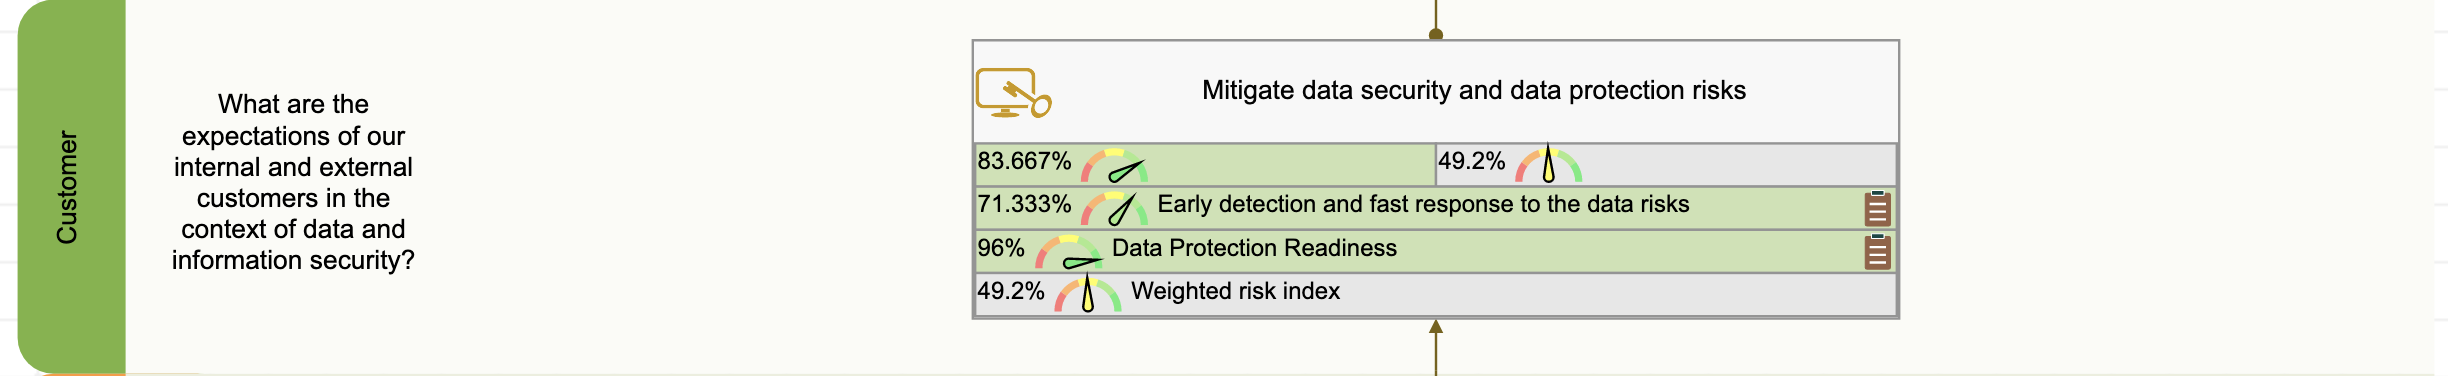 The goals and KPIs of customer perspective of the data security scorecard